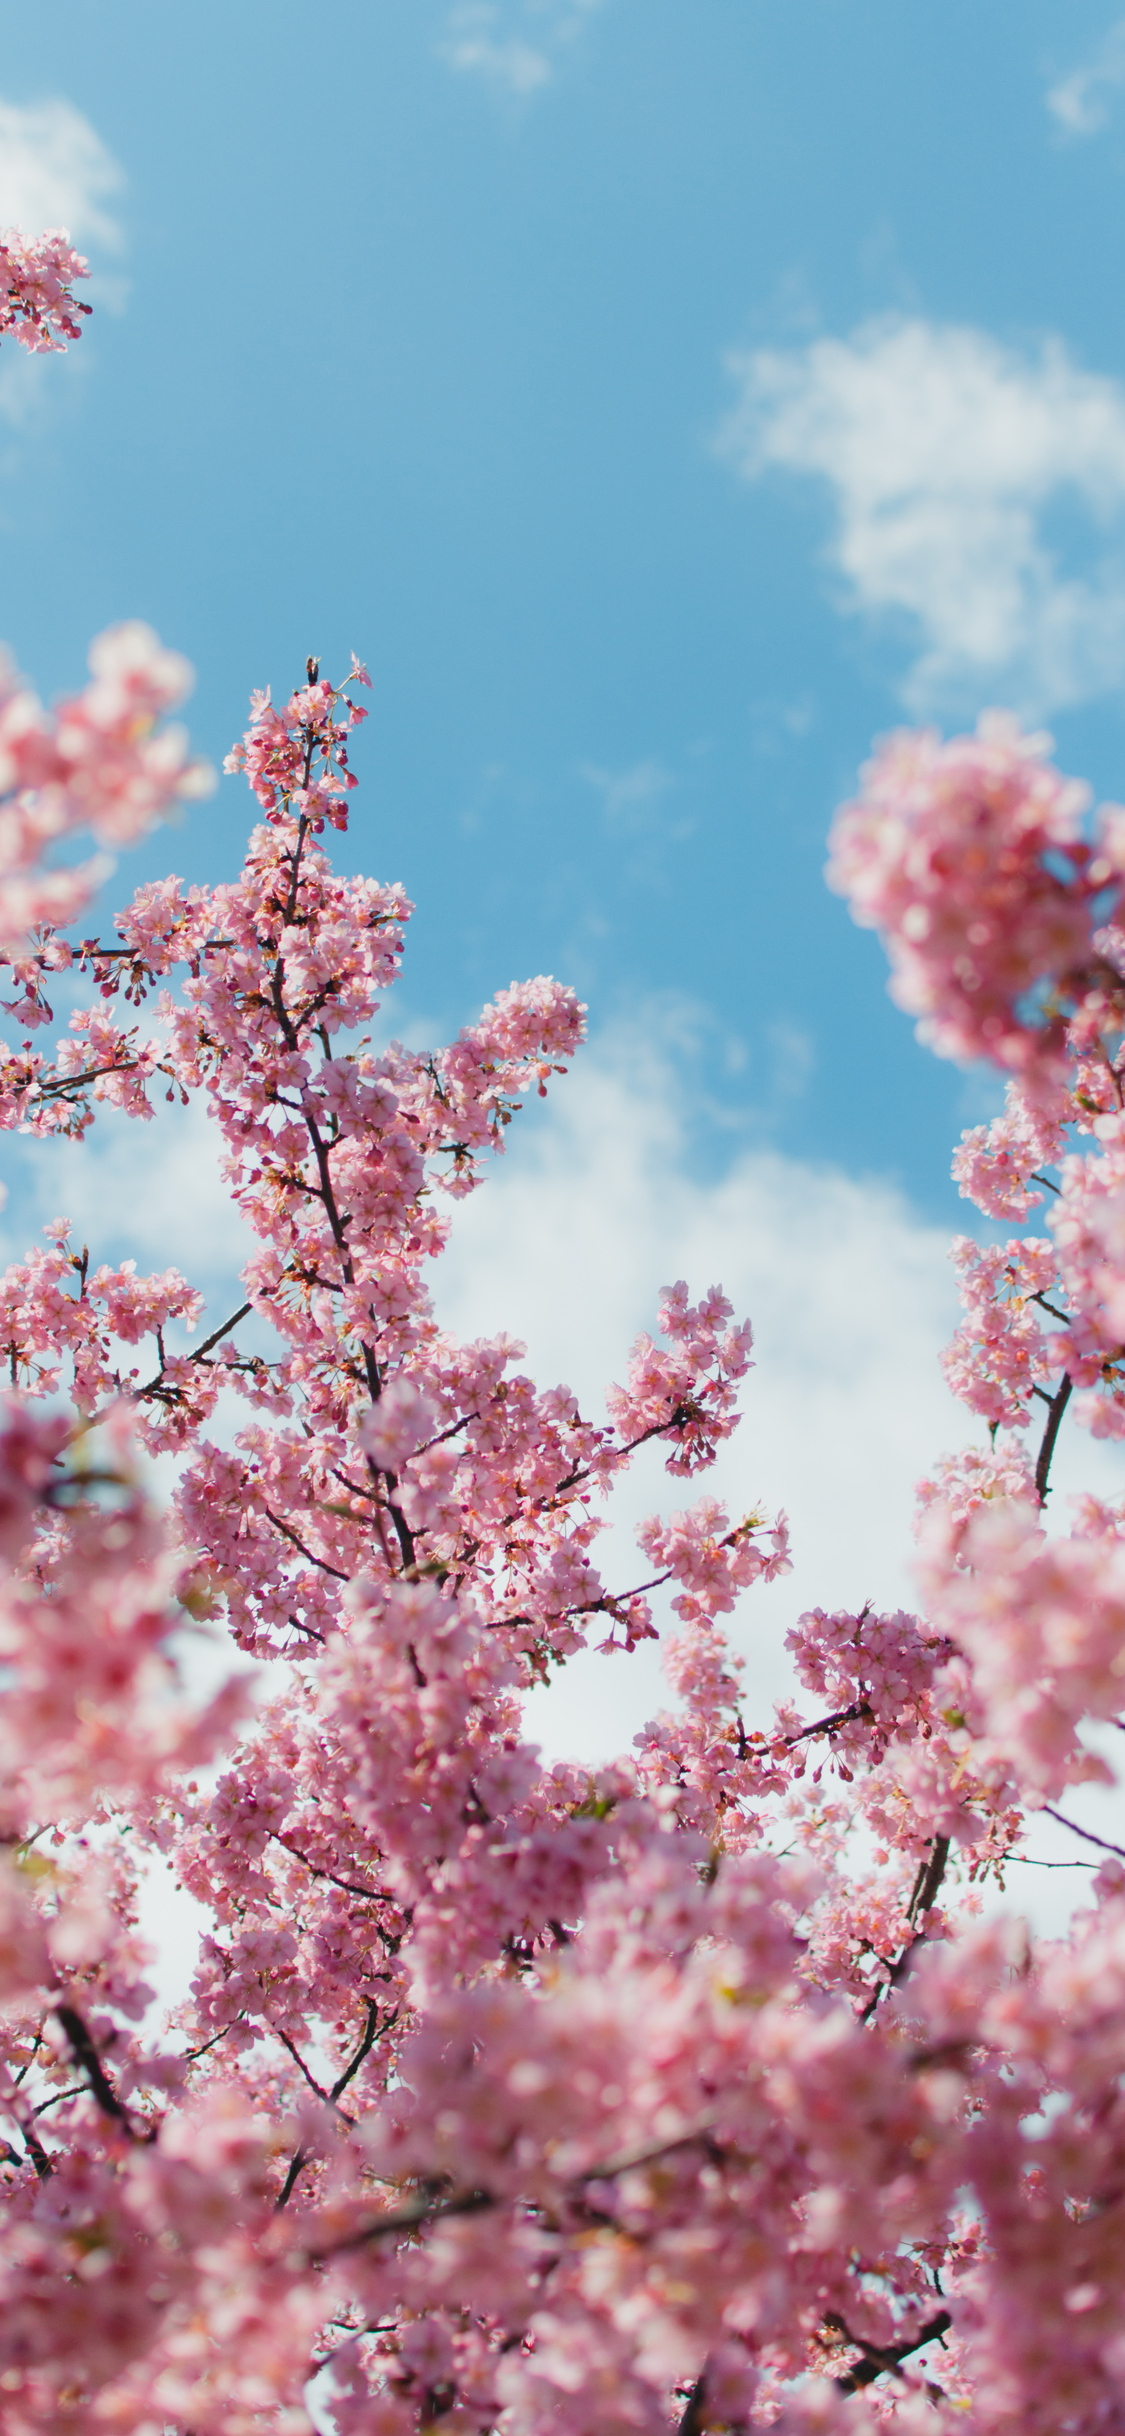 1125x2436 Cherry Blossom Plant 4k Iphone Xs Iphone 10 Iphone